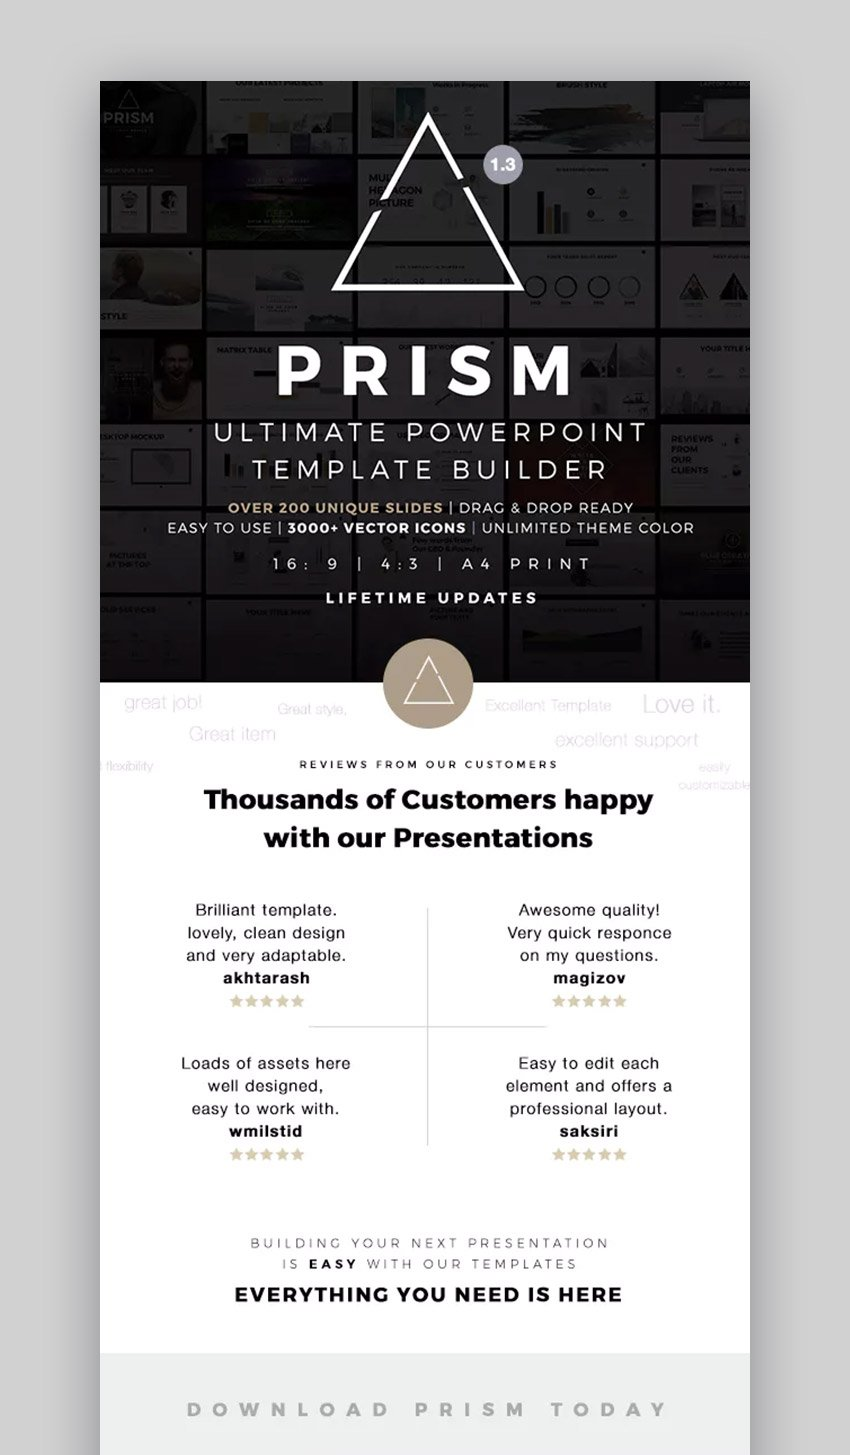 Prism Simple PowerPoint Background